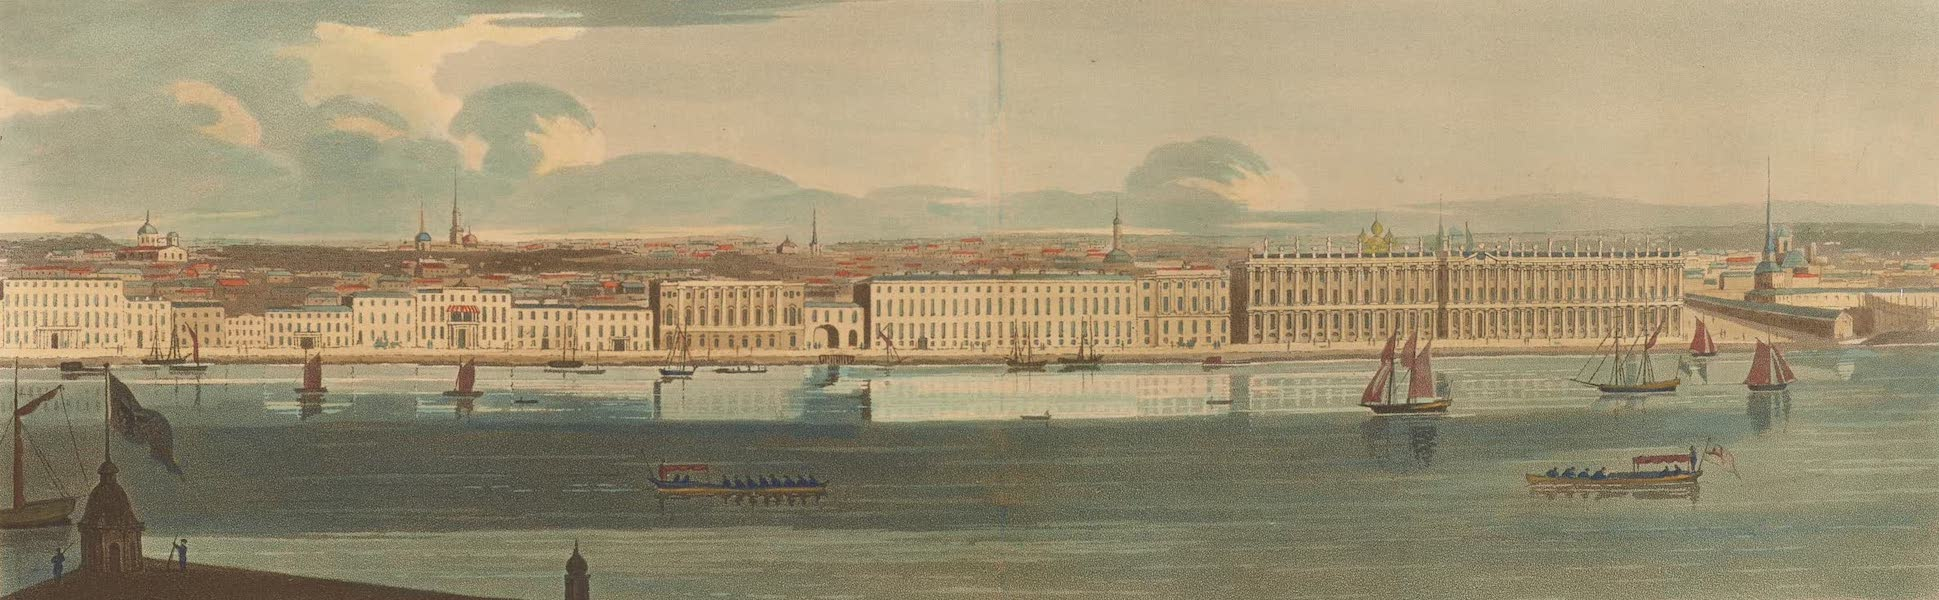 A Northern Summer - Petersburg taken from the steeple of St. Peter and St. Paul (1805)